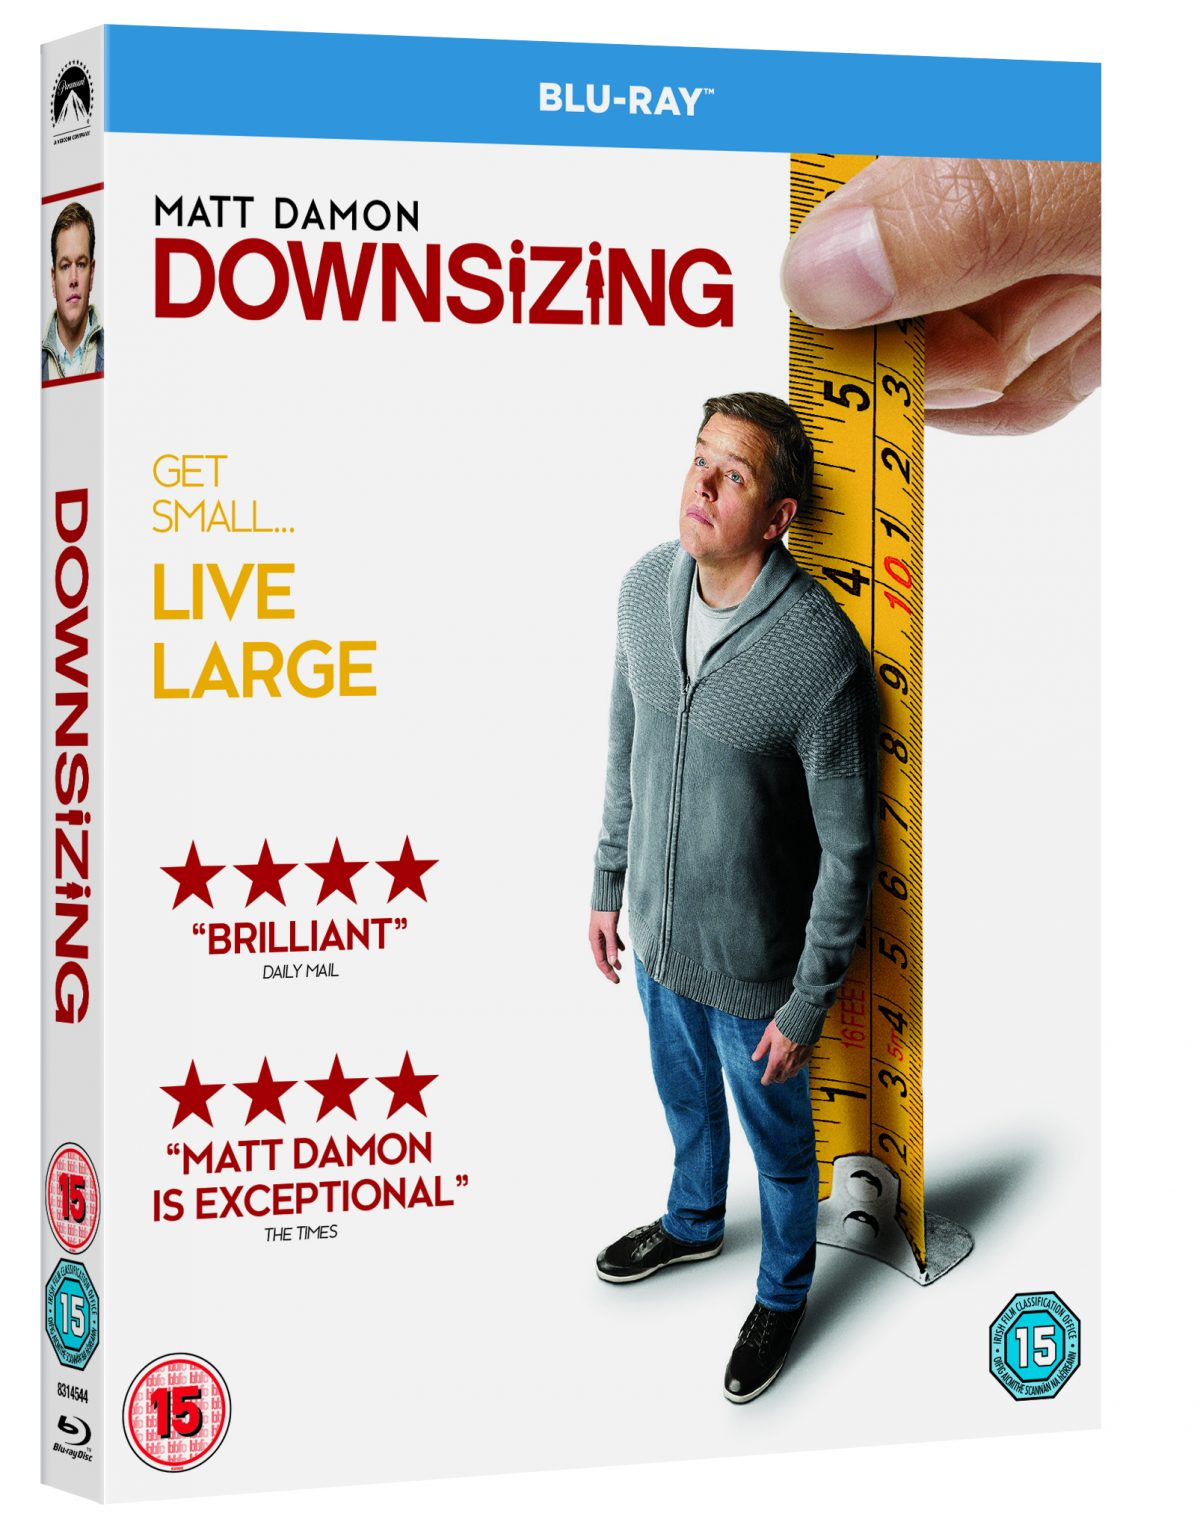 We checked out Downsizing starring Matt Damon, Christoph Waltz and Kristen Wiig, at last night's Cineworld Unlimited Screening in January. Now the movie heads to DVD, Blu-ray and Digital.